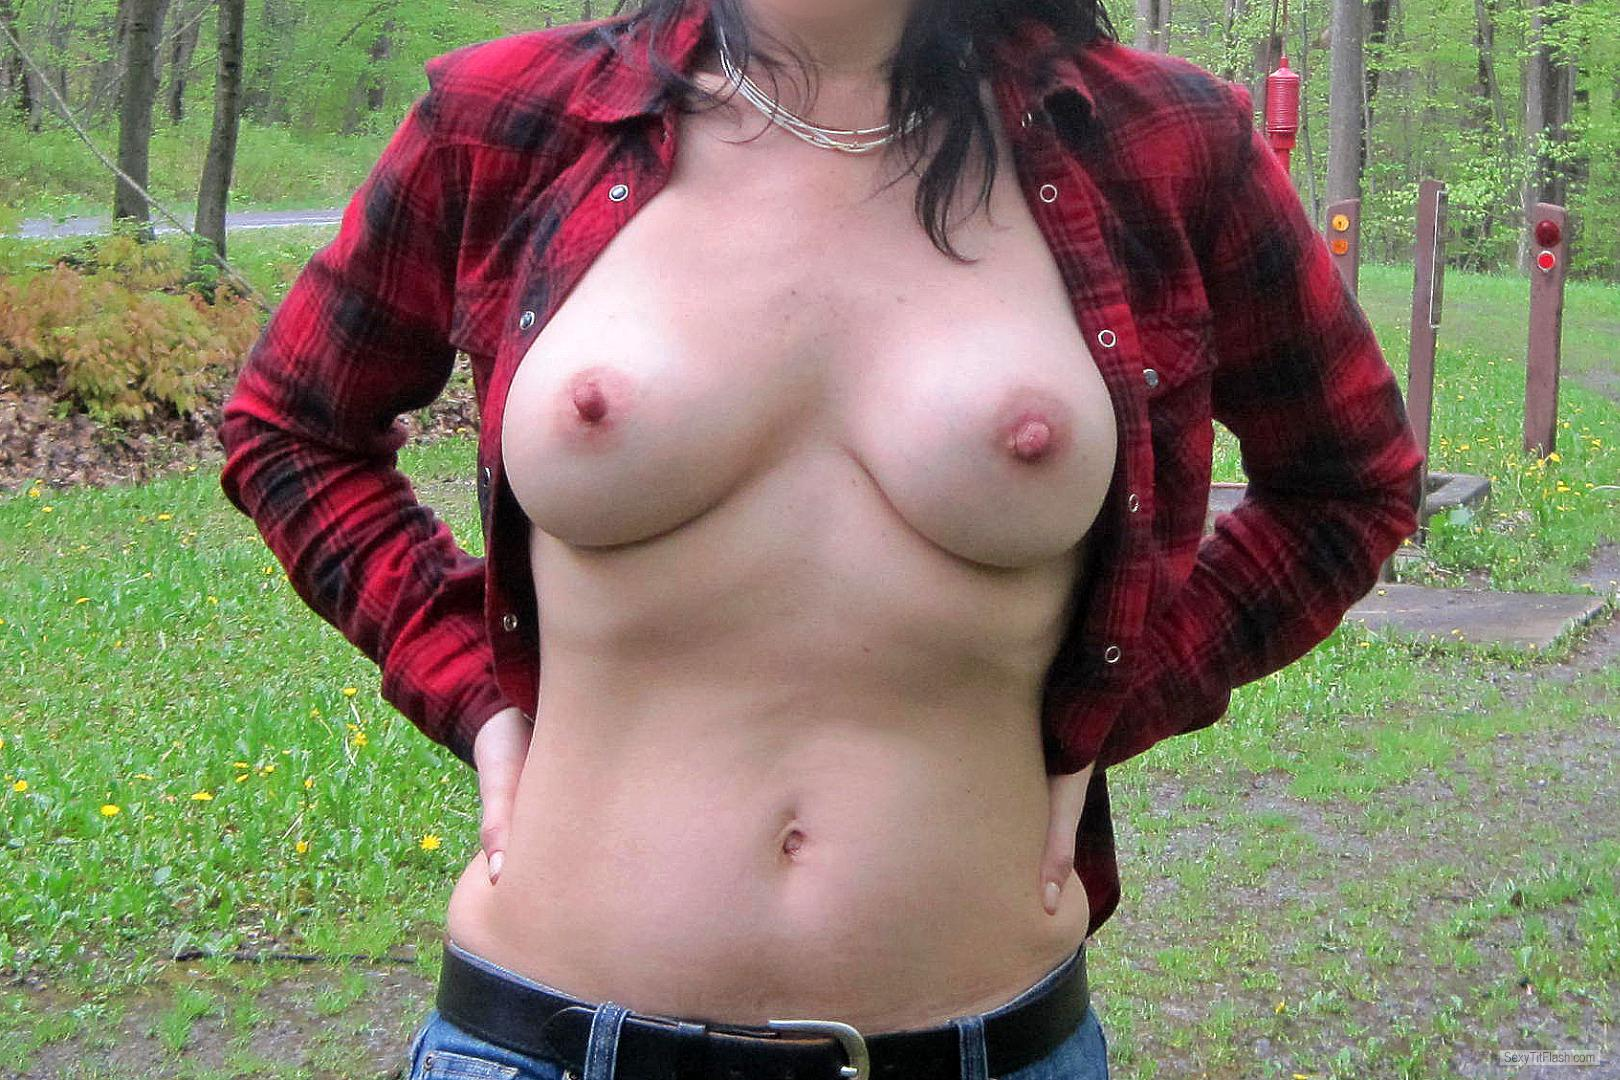 Tit Flash: Girlfriend's Tanlined Medium Tits - Bella from United States